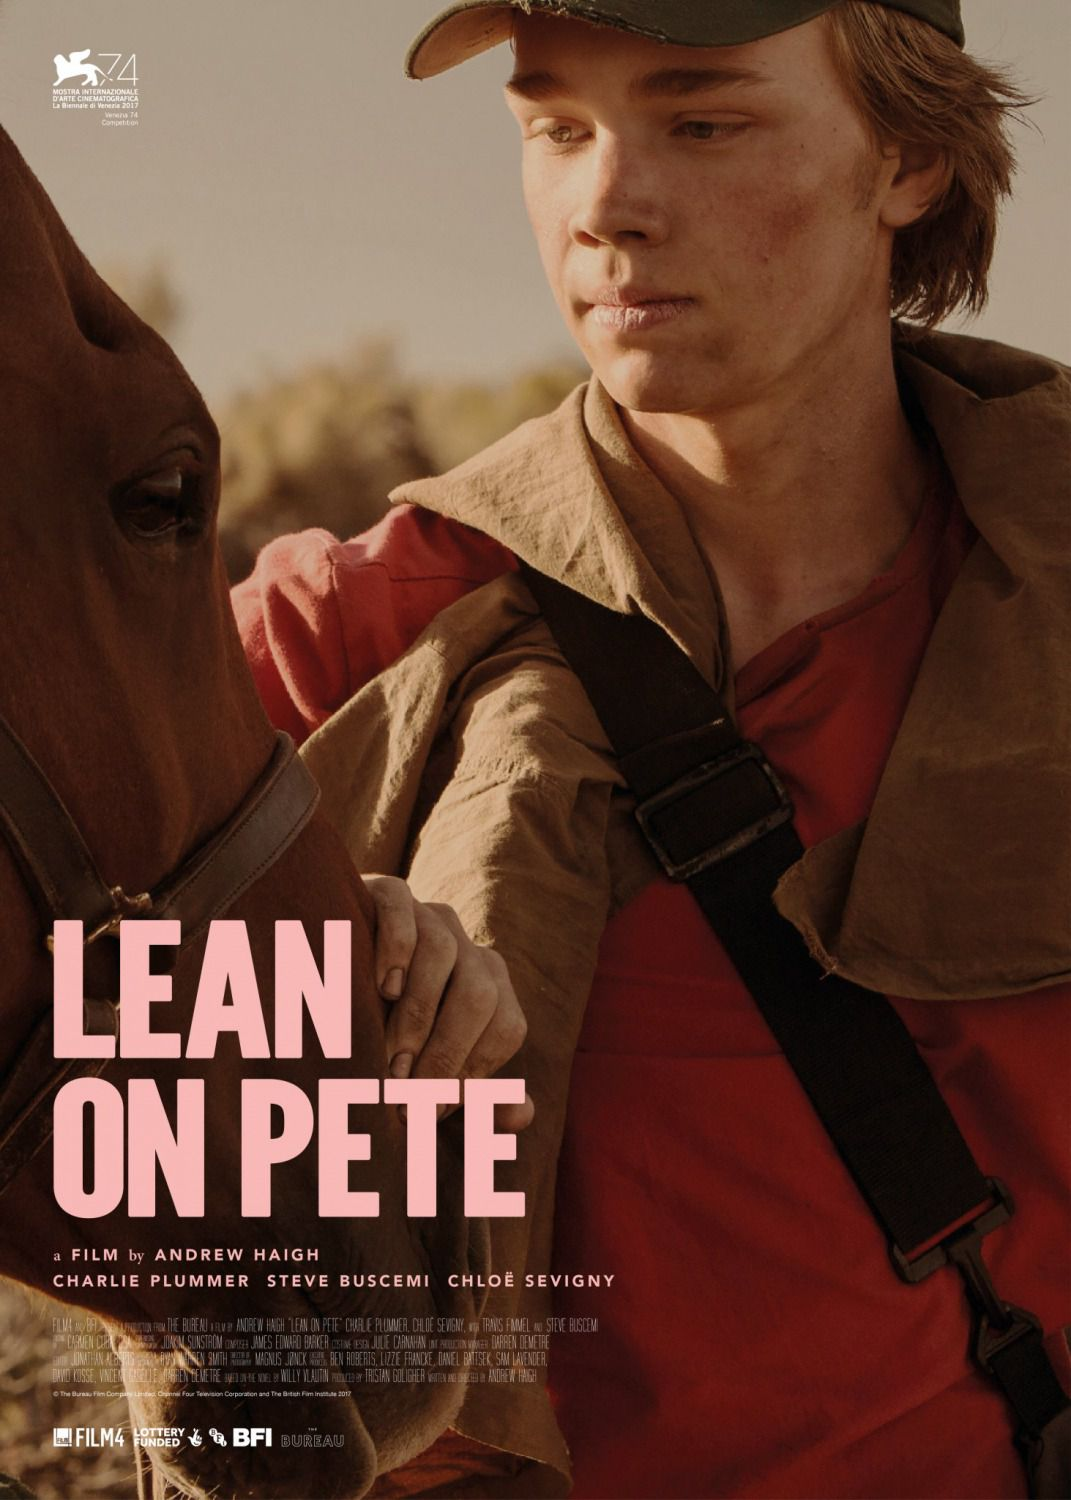 Lean on Pete - Charles Plummer